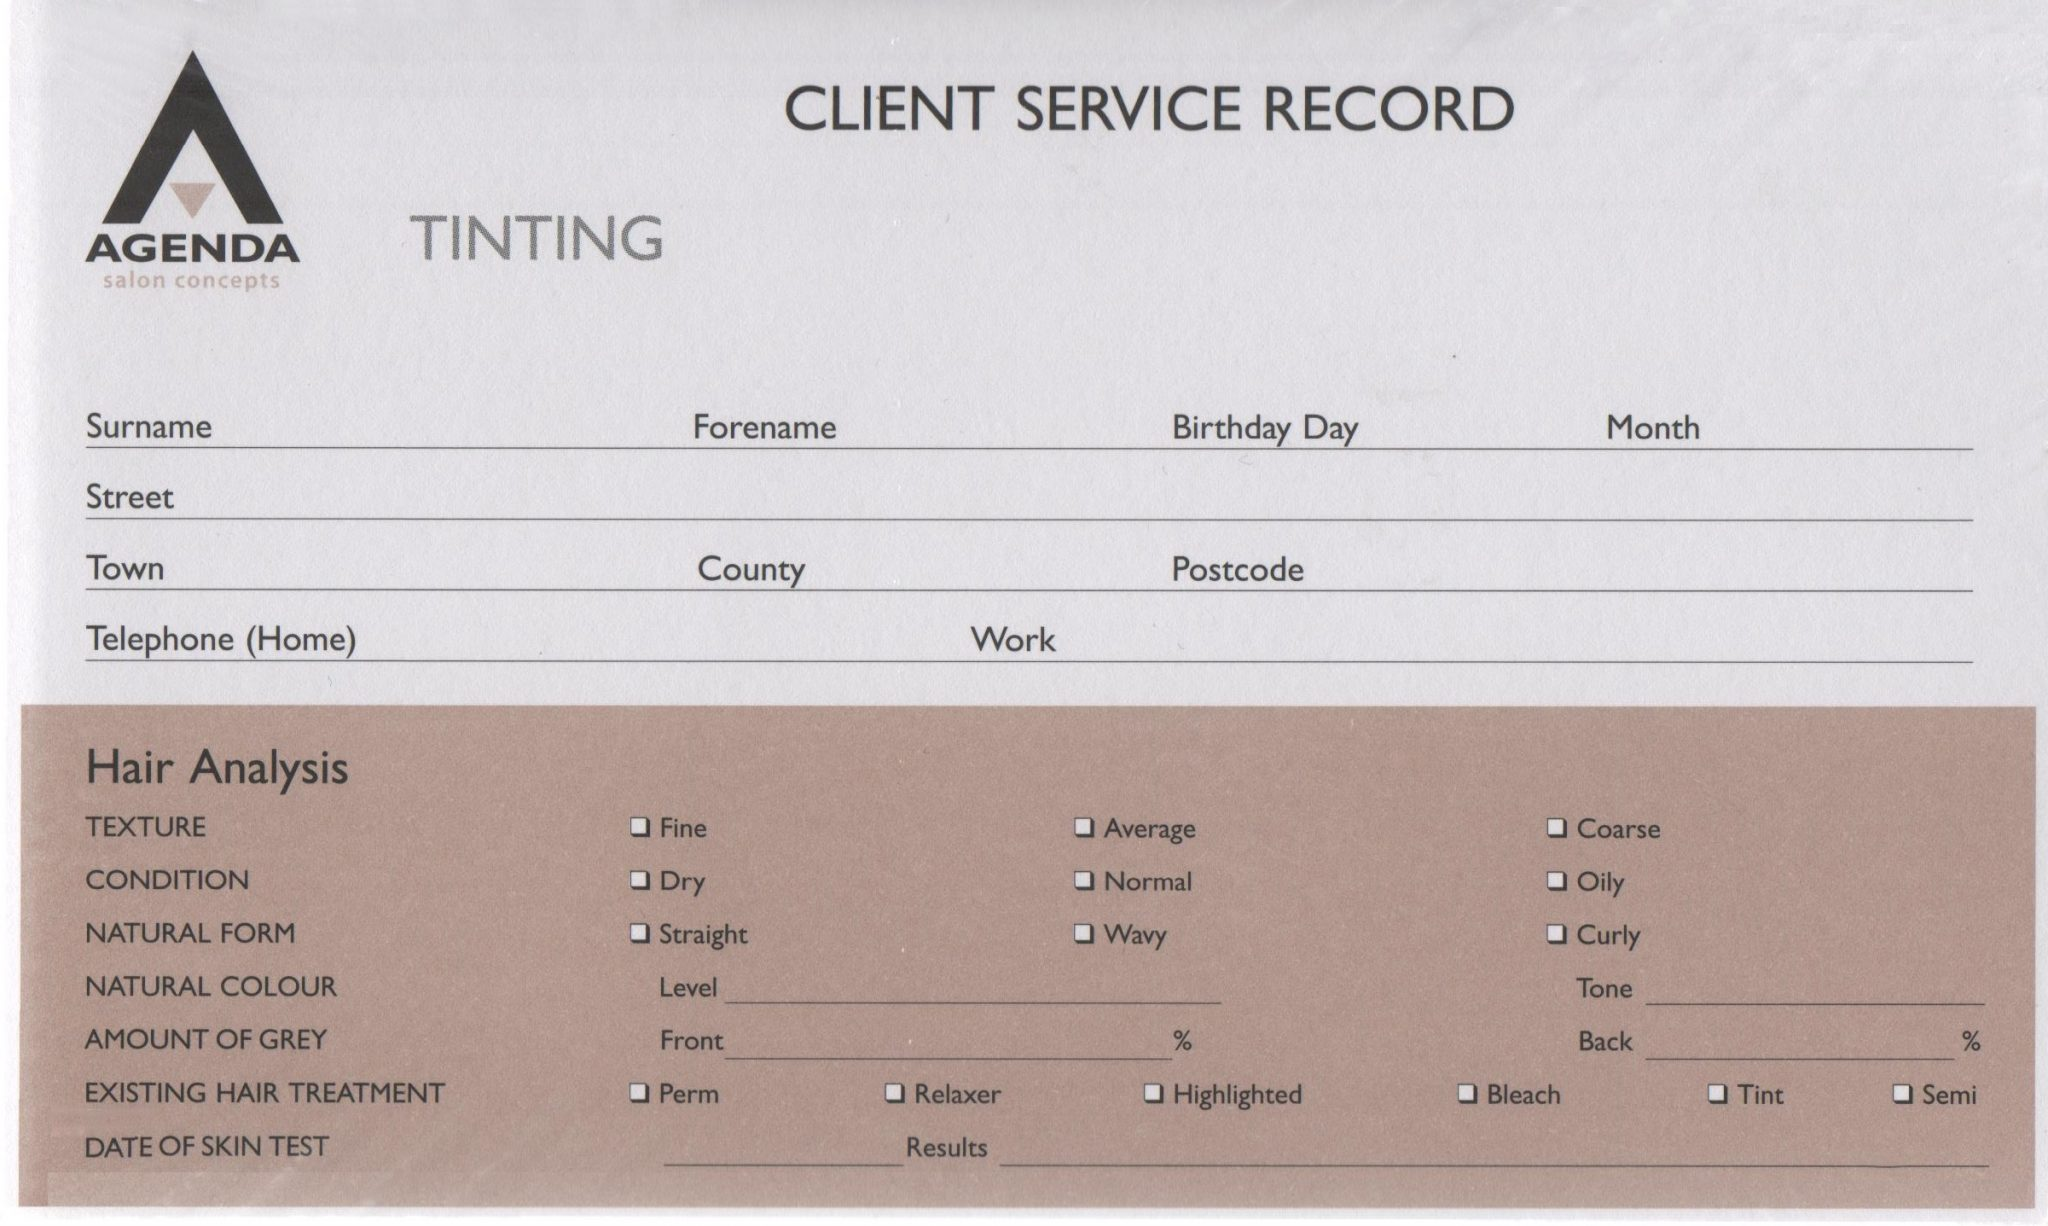 Agenda Client Service Record Cards - Tinting